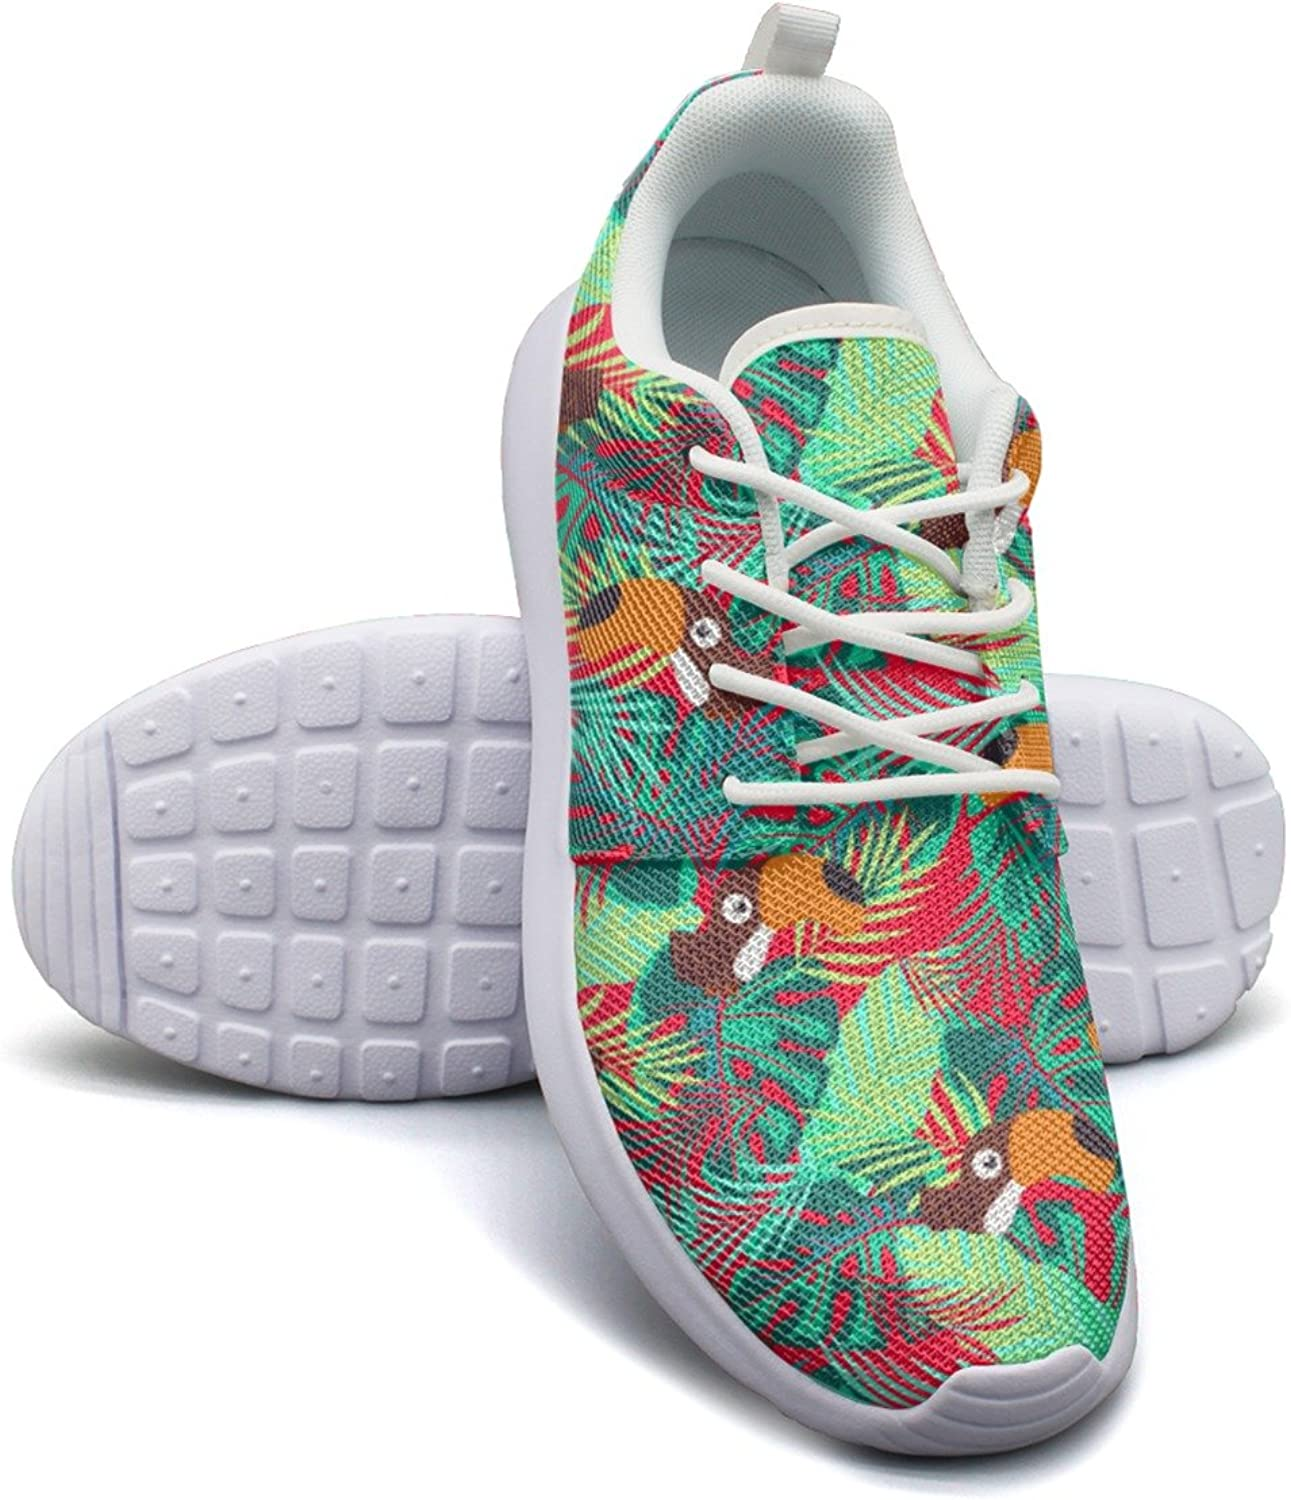 Abstract Toco Toucan Women's Lightweight Mesh Volleyball Sneakers Retro Gym shoes